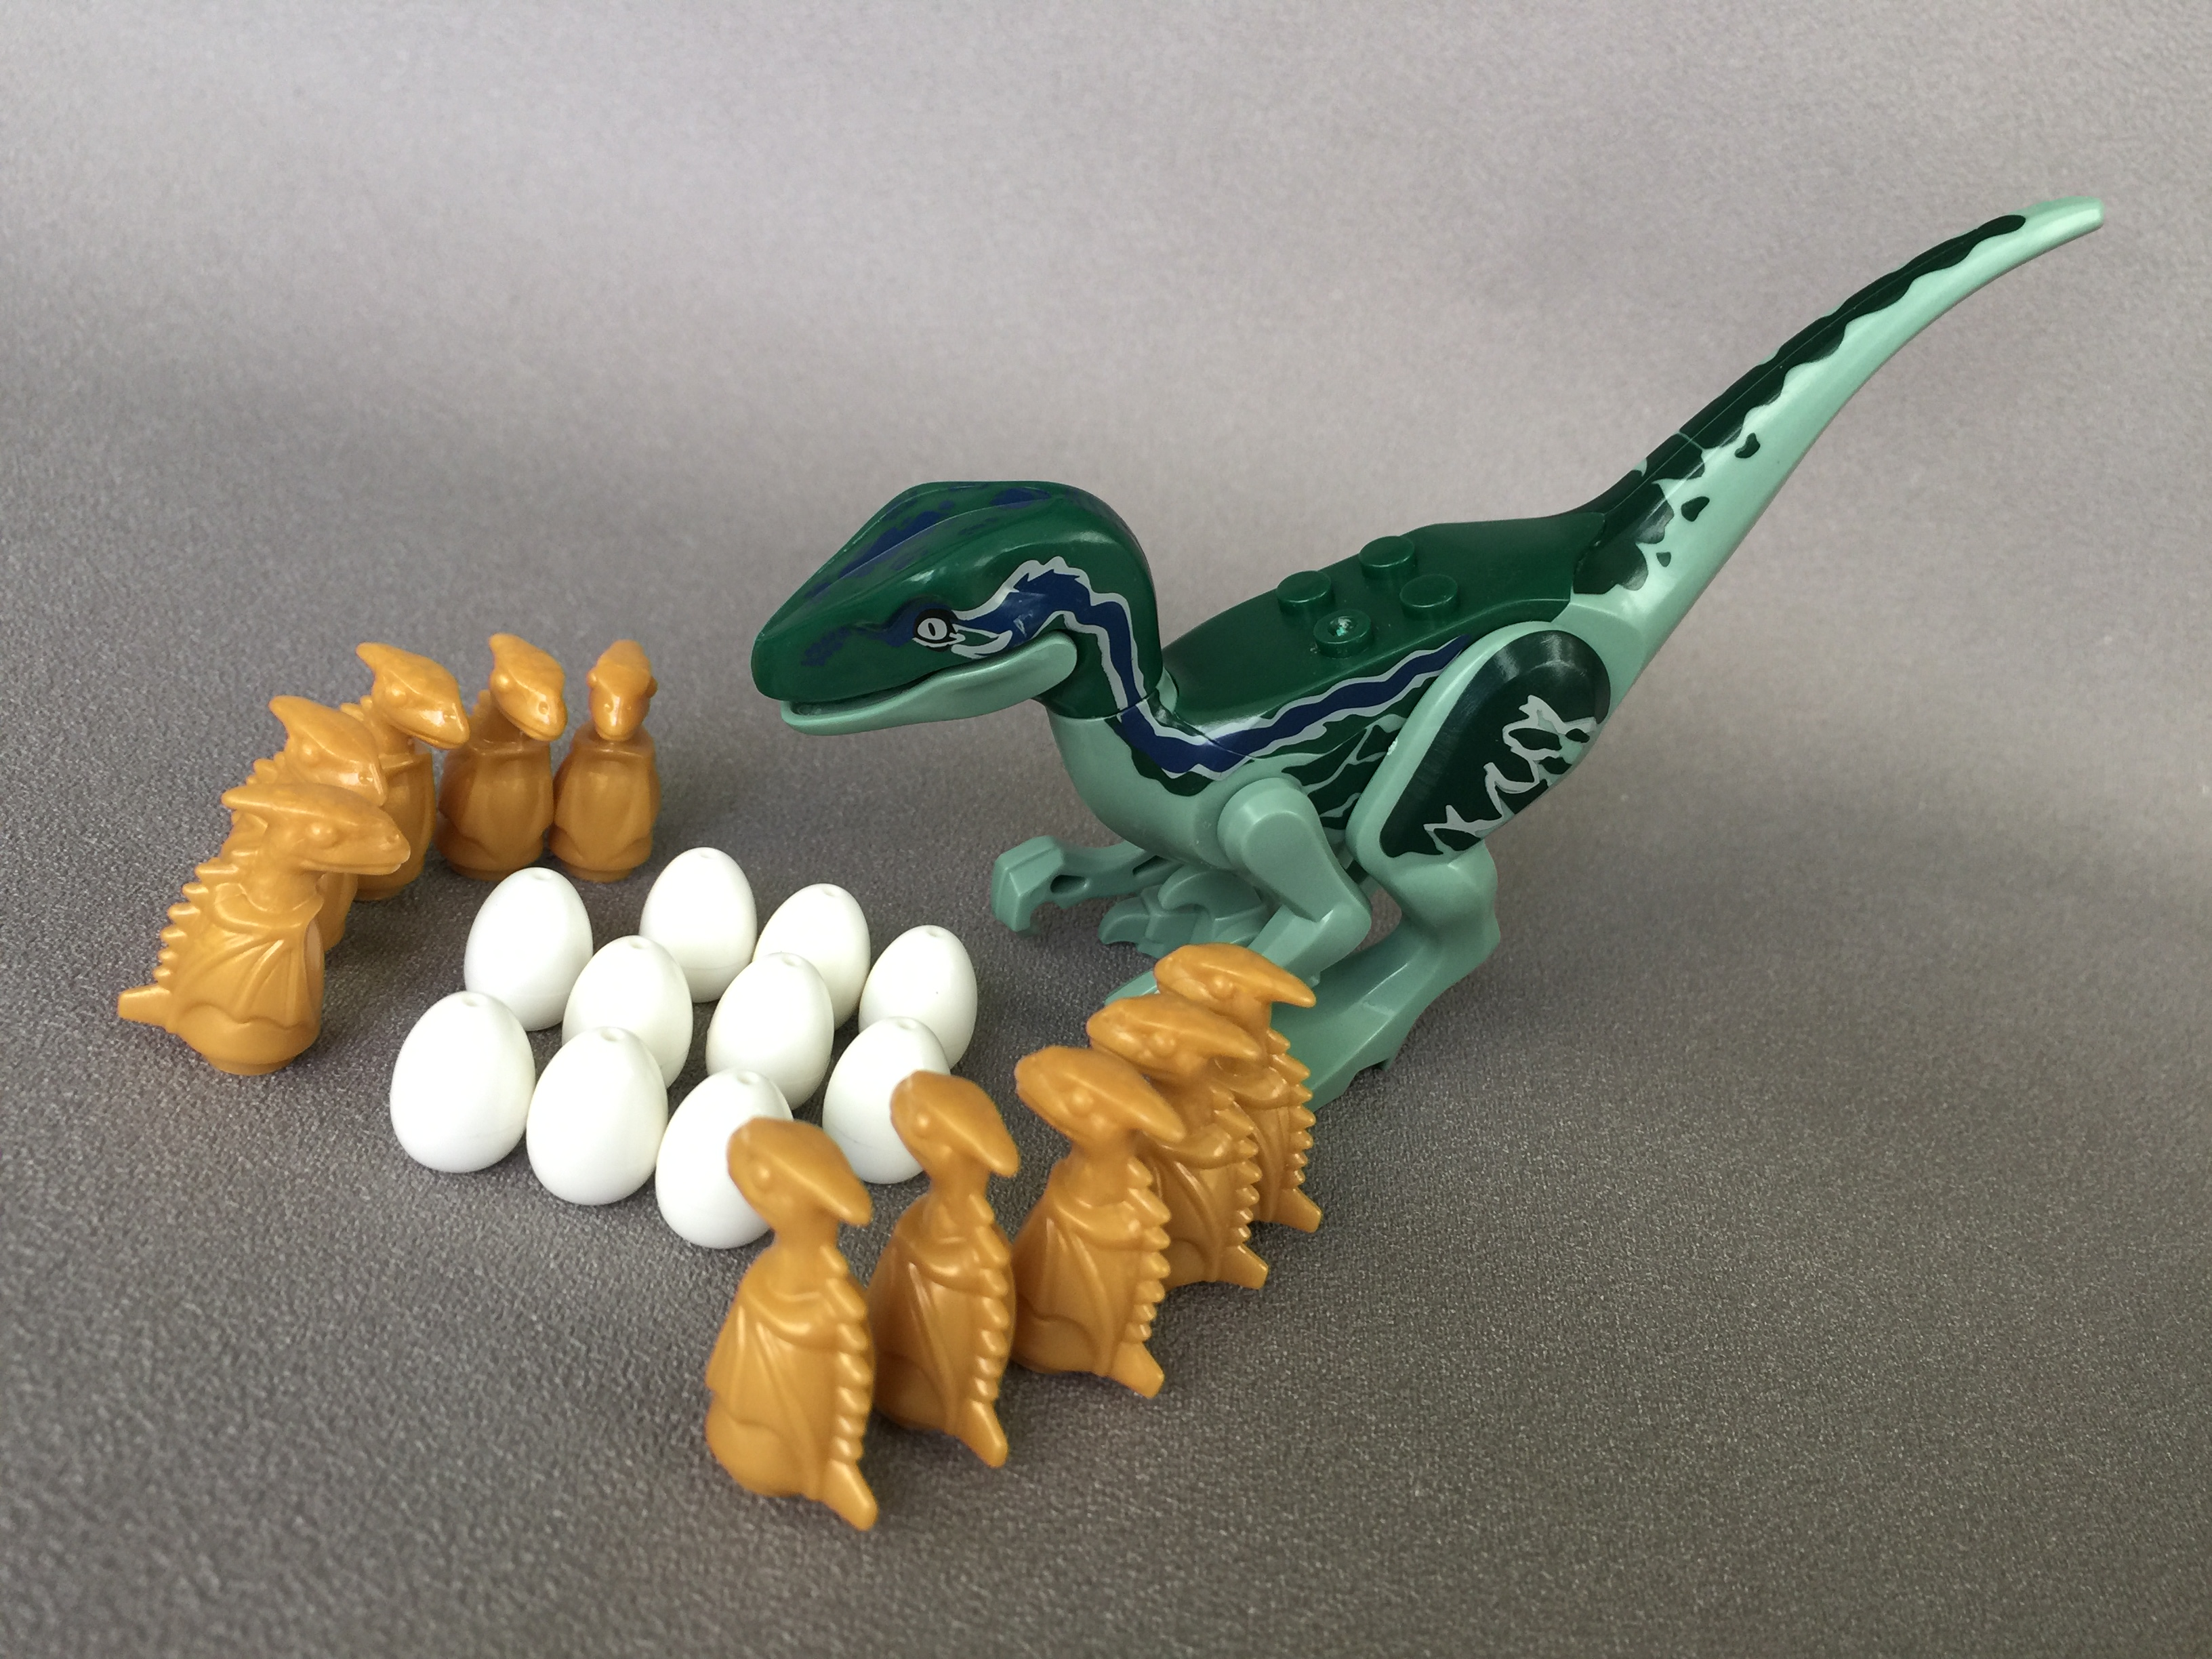 24946 2 x White Egg with Hole on Top New Lego - Jurassic World // Dinosaur